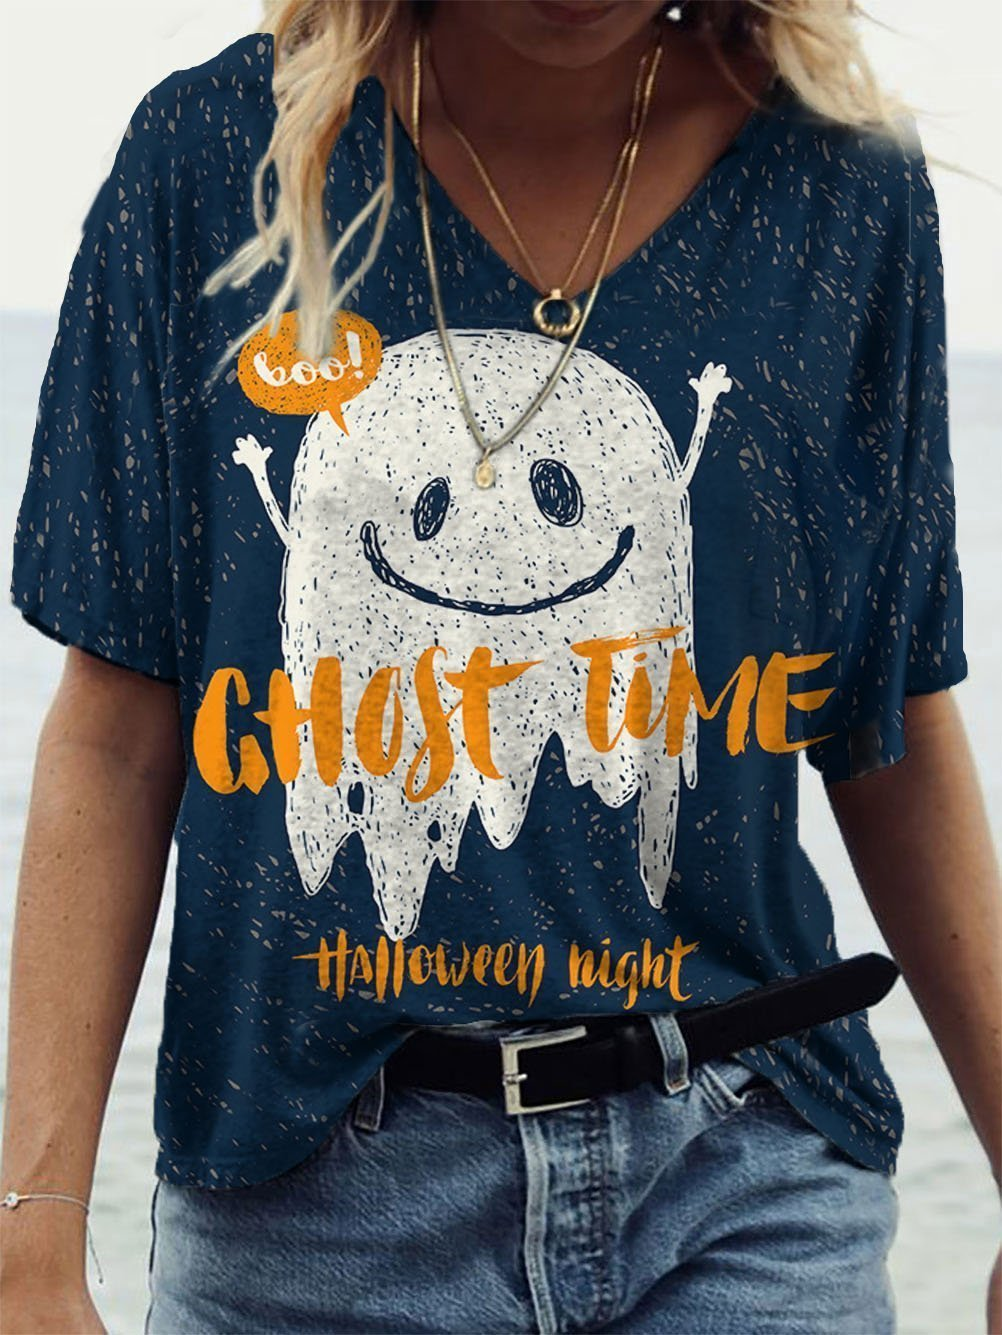 Boo GHOST TIME Halloween Night Ghost Print V-neck T-Shirt